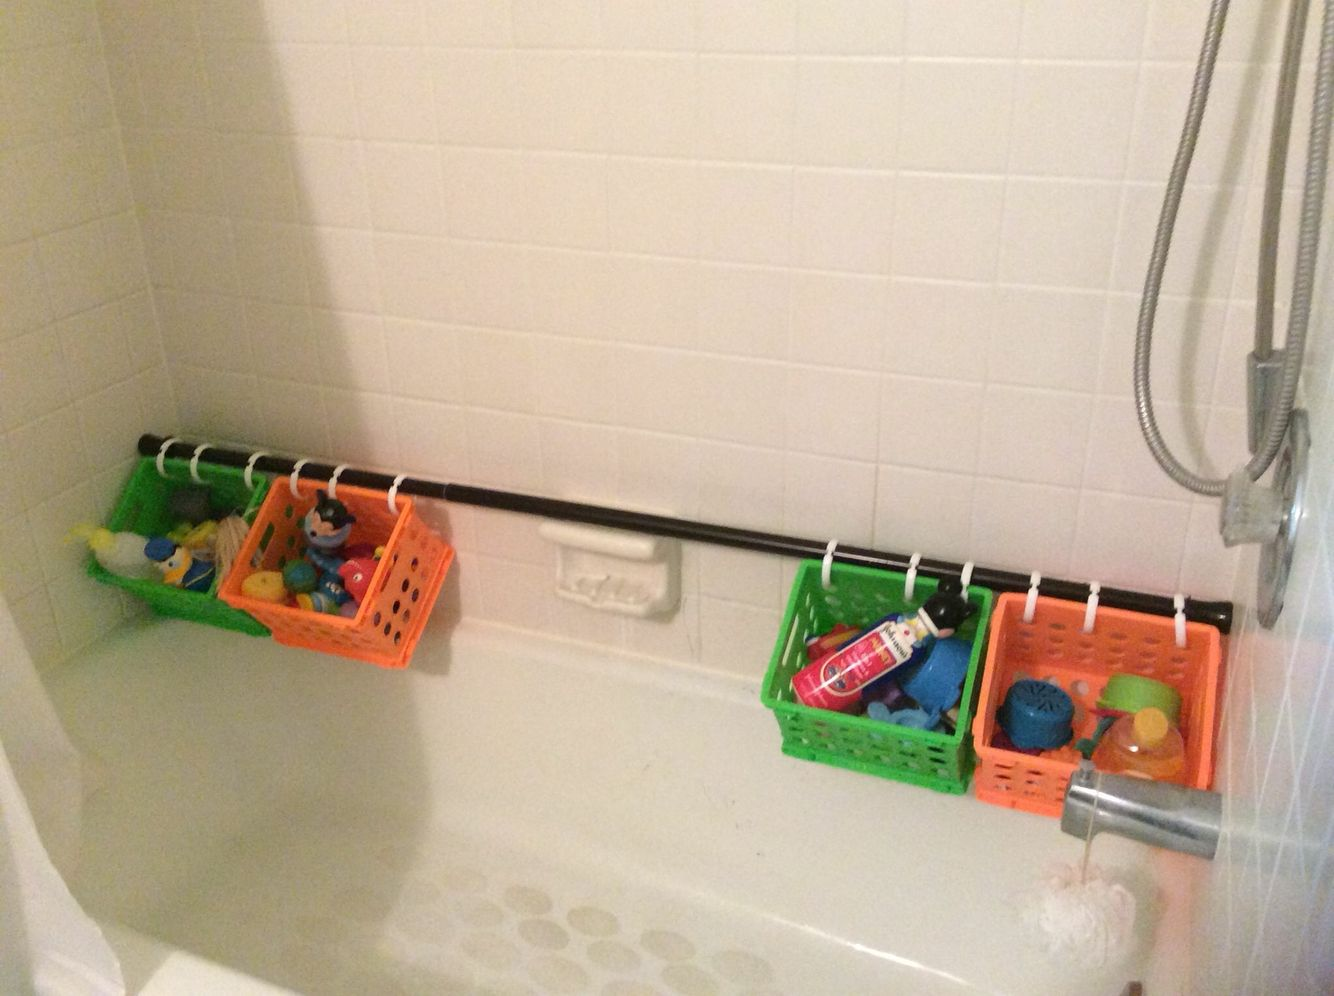 Tension shower curtain rod, shower curtain rings, plastic baskets ...